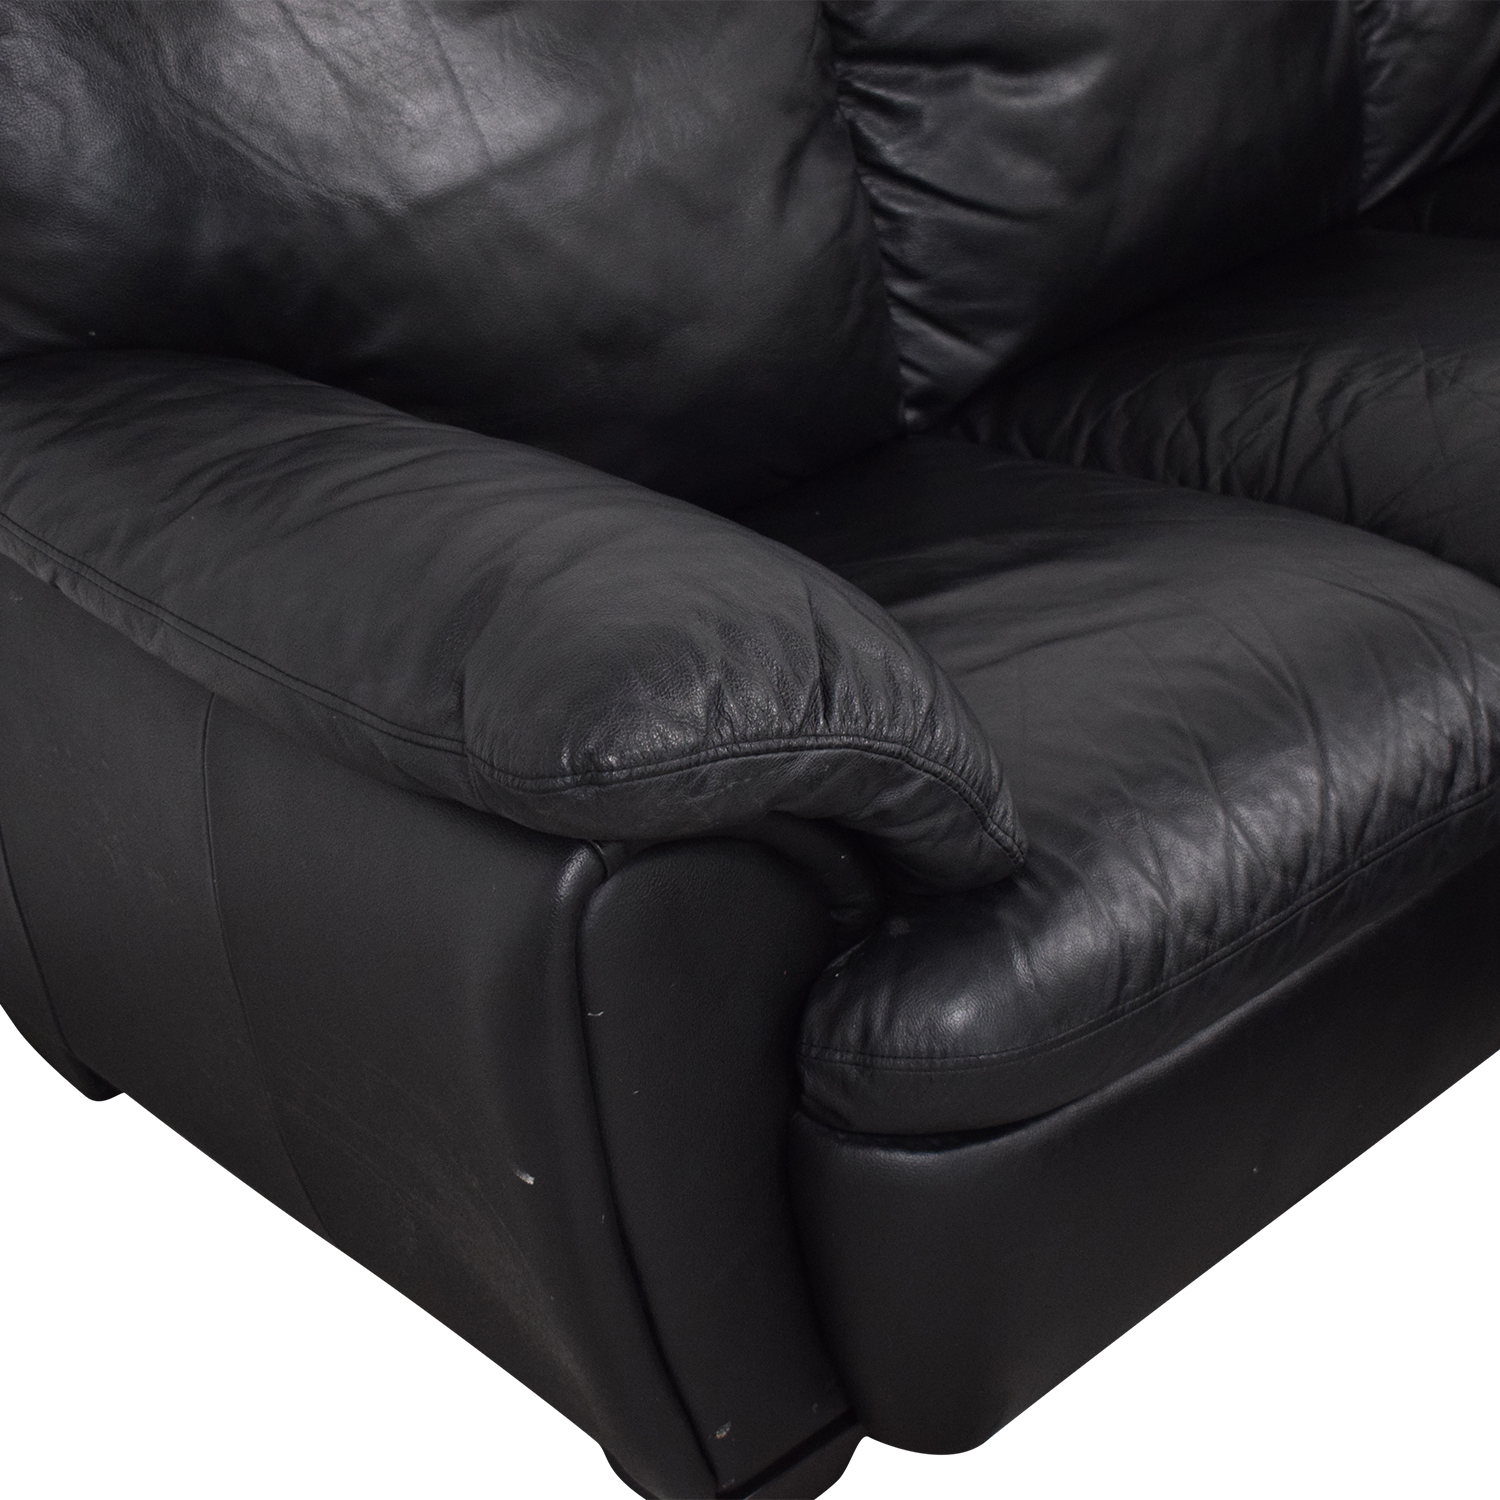 Broyhill Furniture Broyhill Leather Sofa and Ottoman